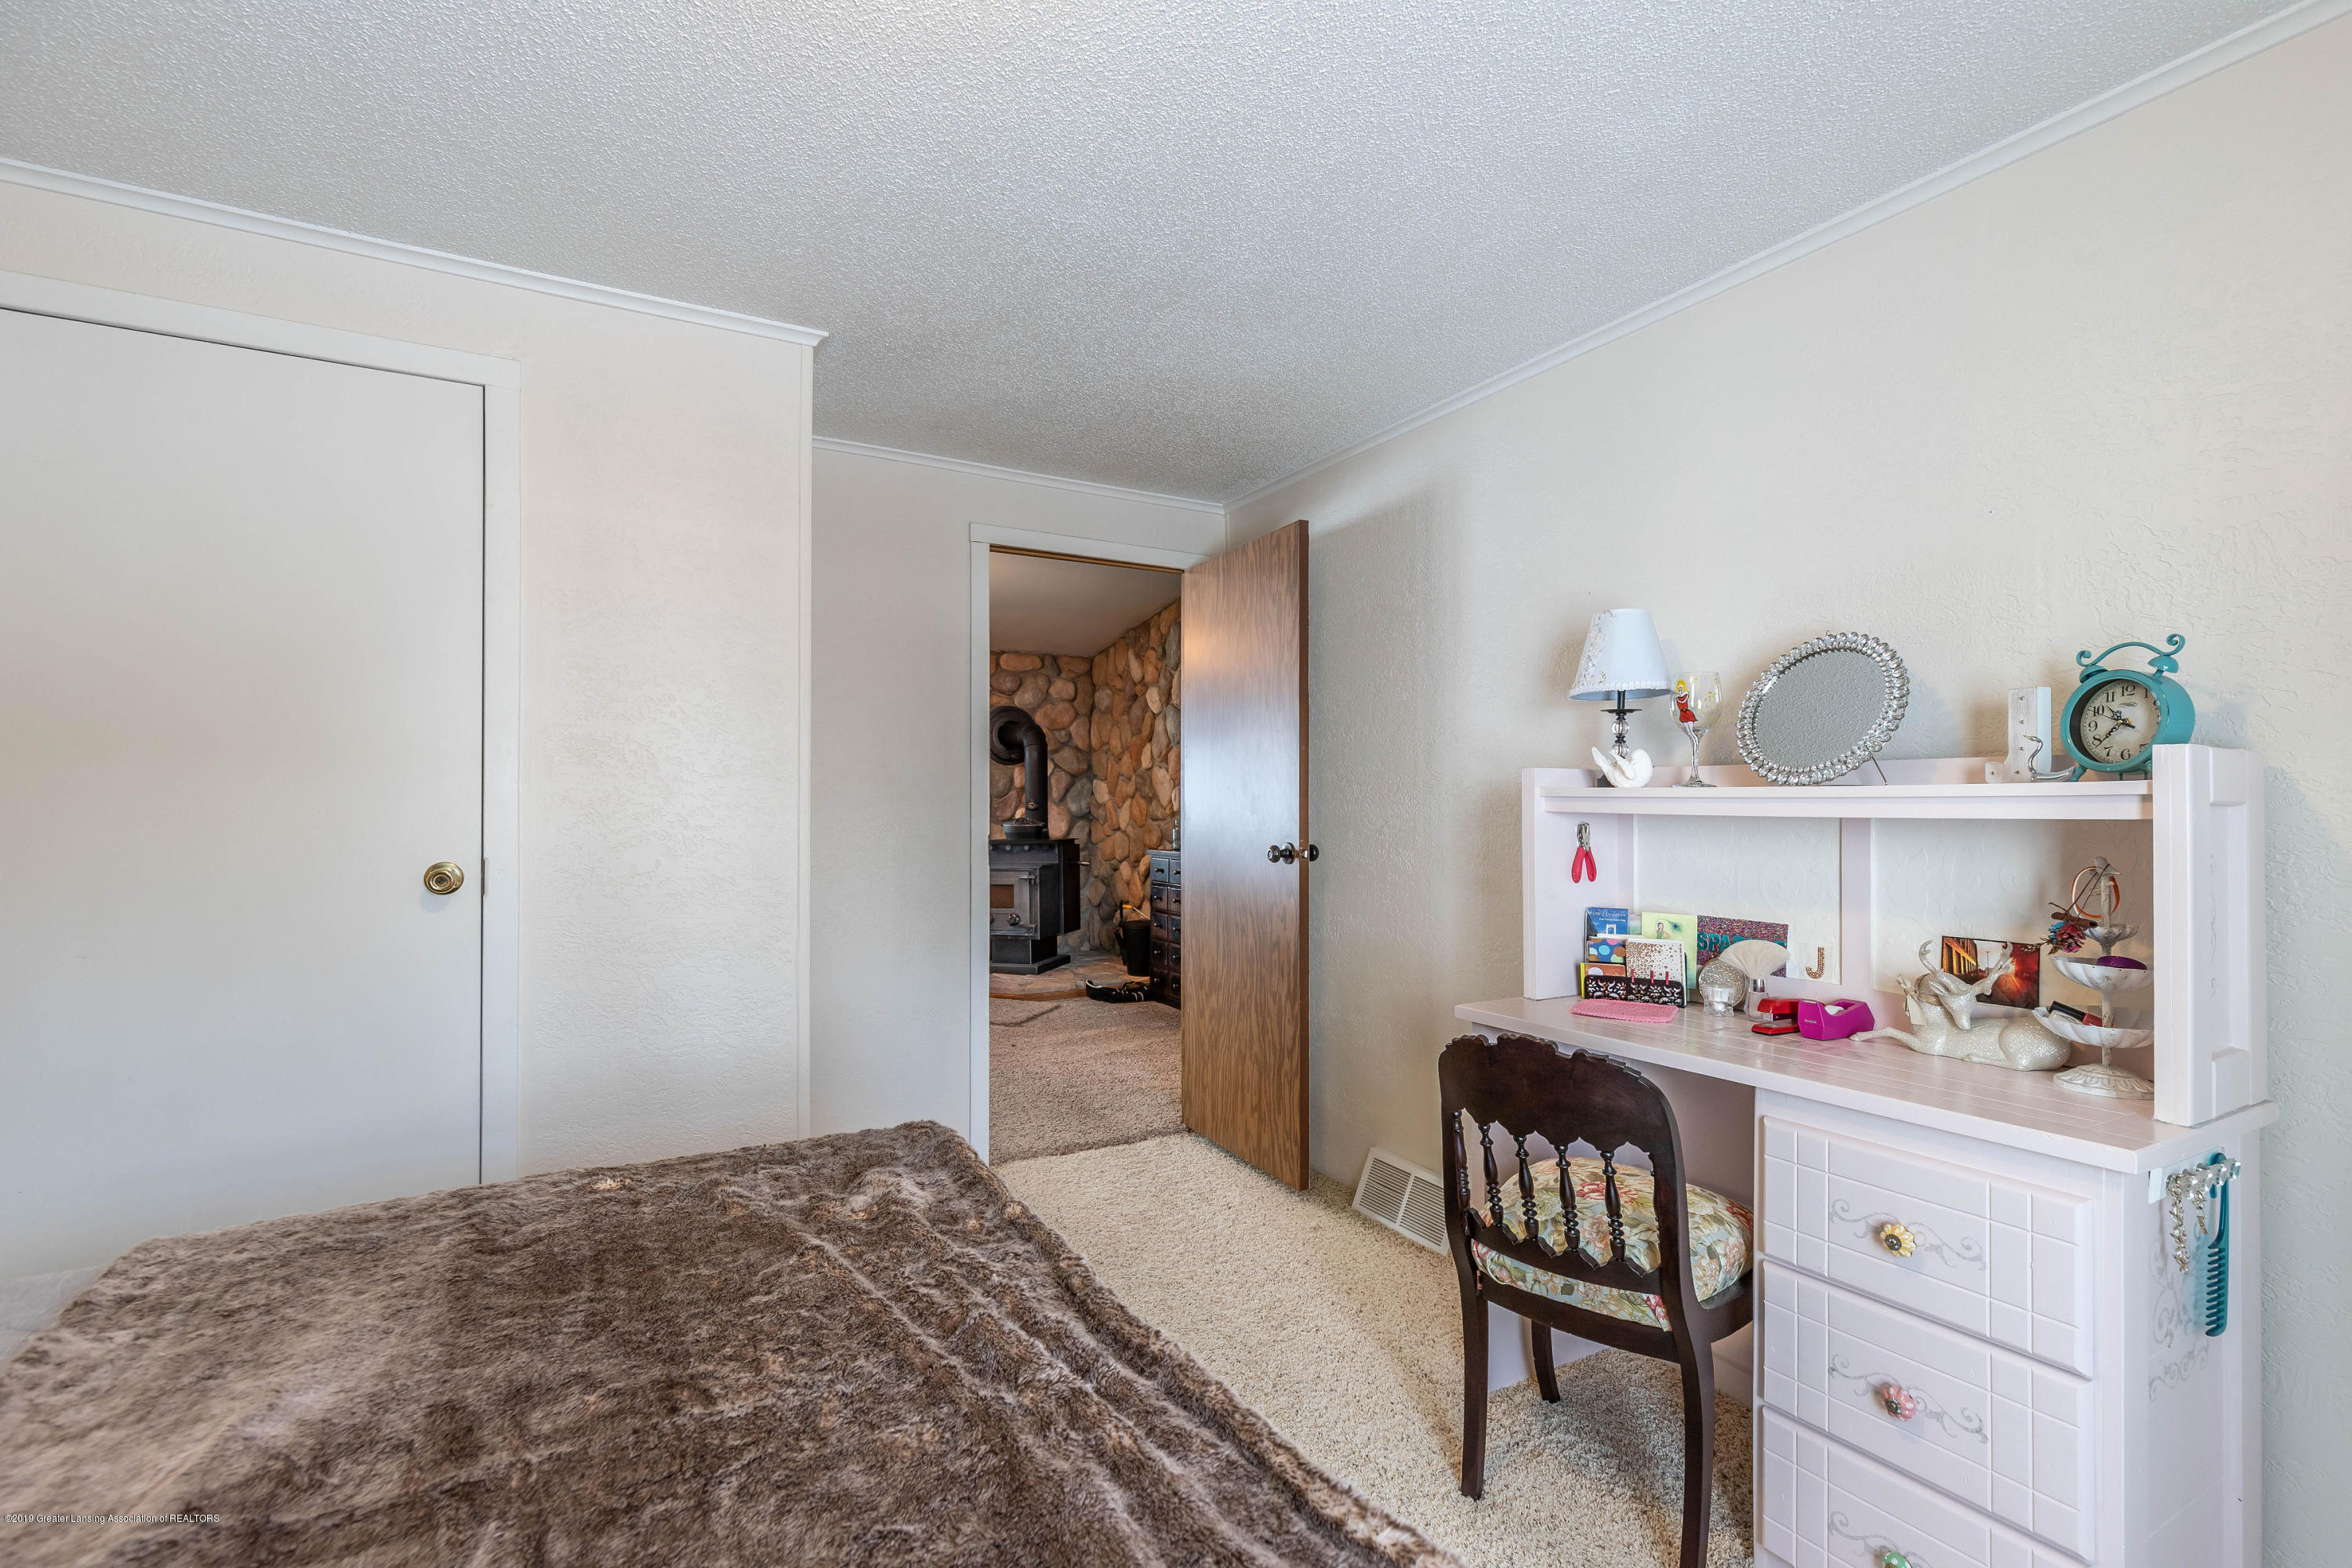 1504 S Chester Rd - chesterbed13(1of1) - 23